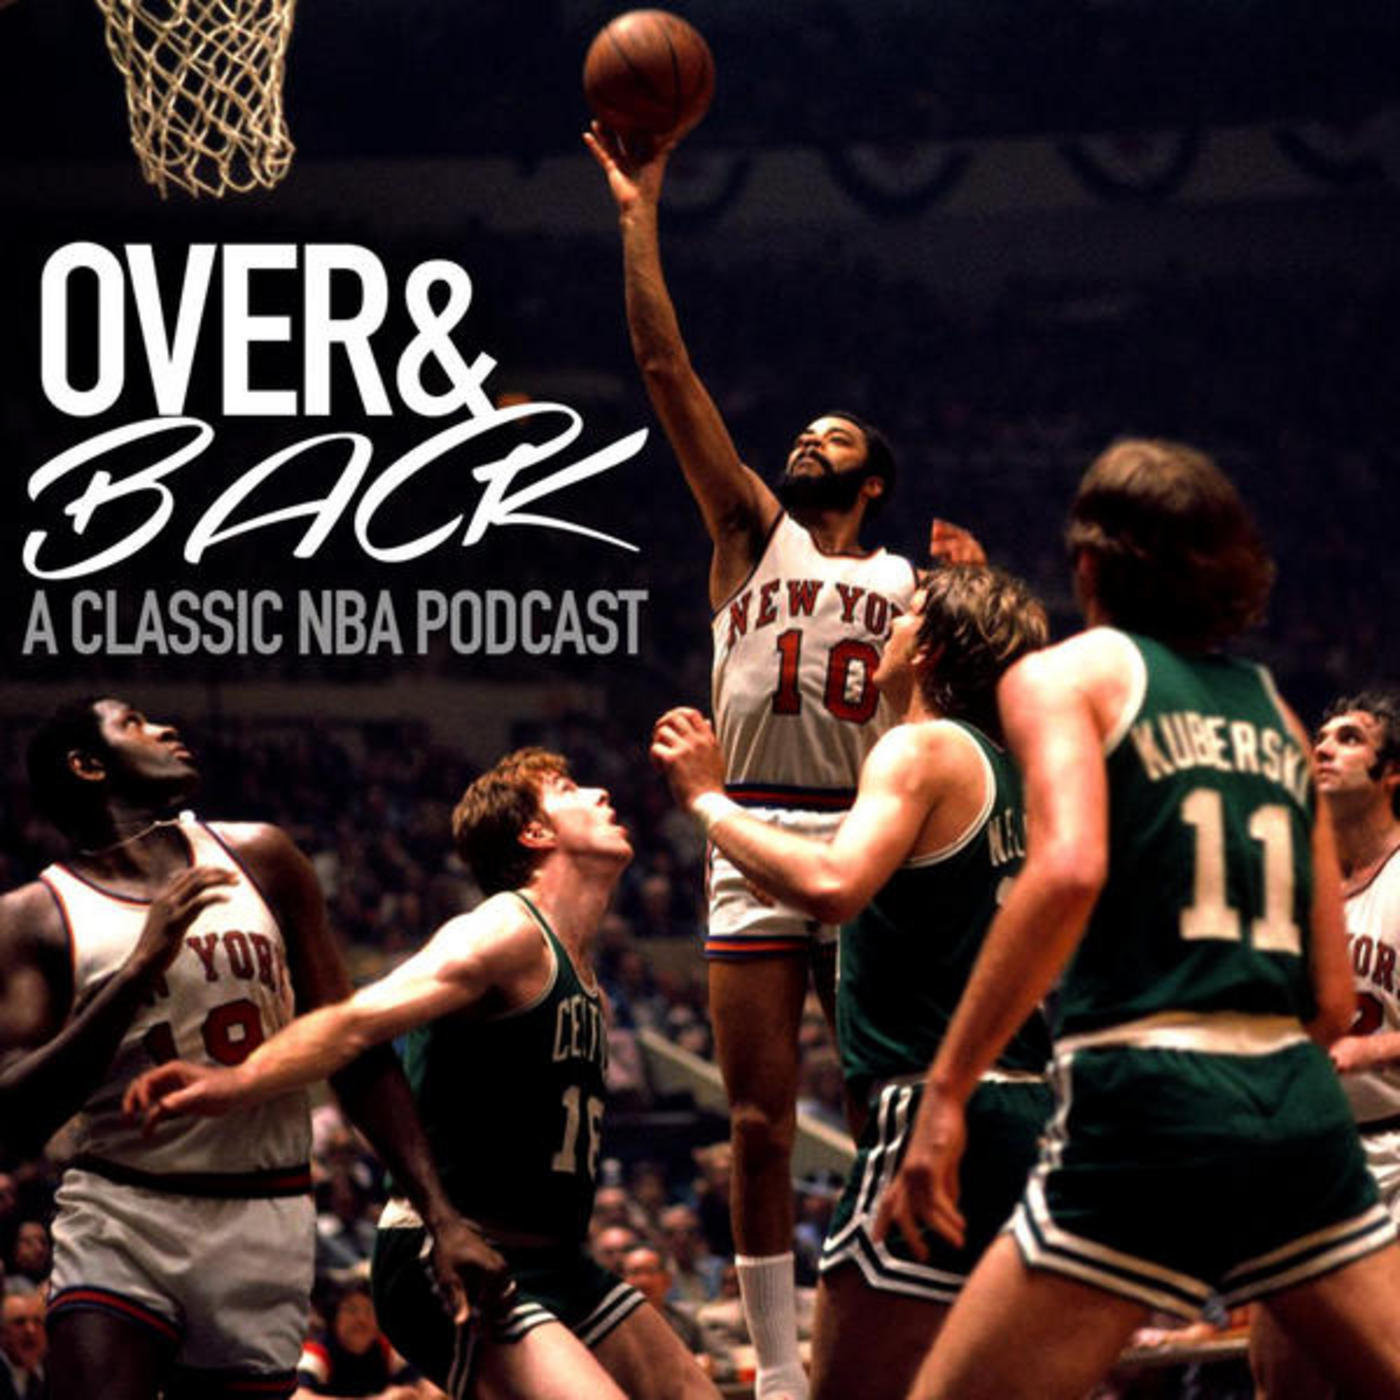 Over and Back: Dreaming about Dream Teams